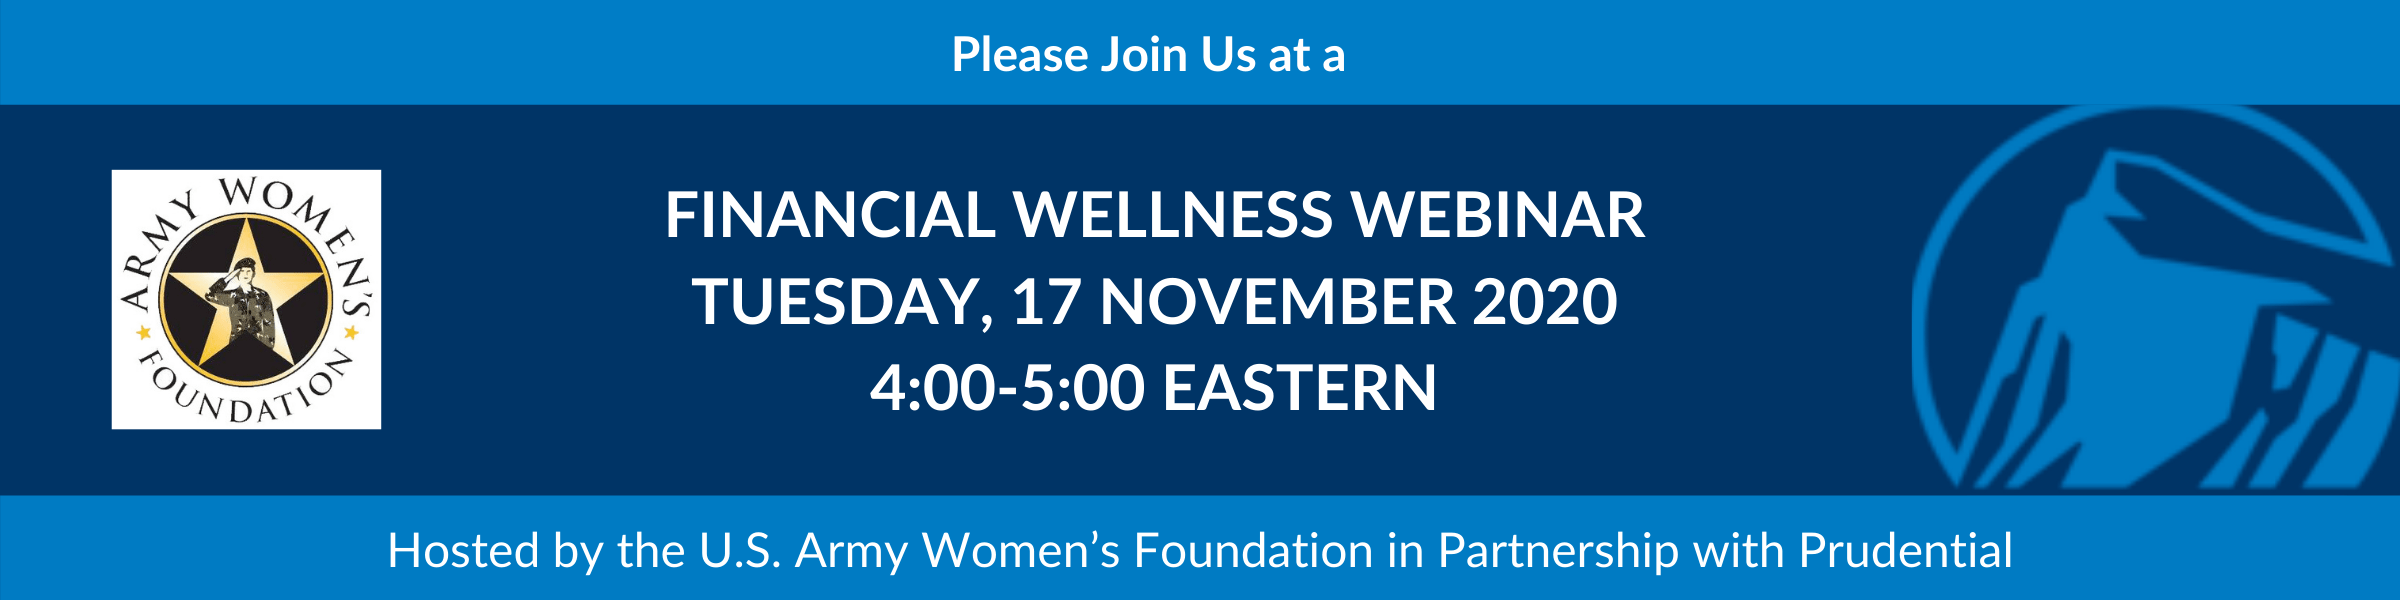 Financial Wellness Webinar hosted by U.S. Army Women's Foundation in partnership with Prudential on November 17, 2020